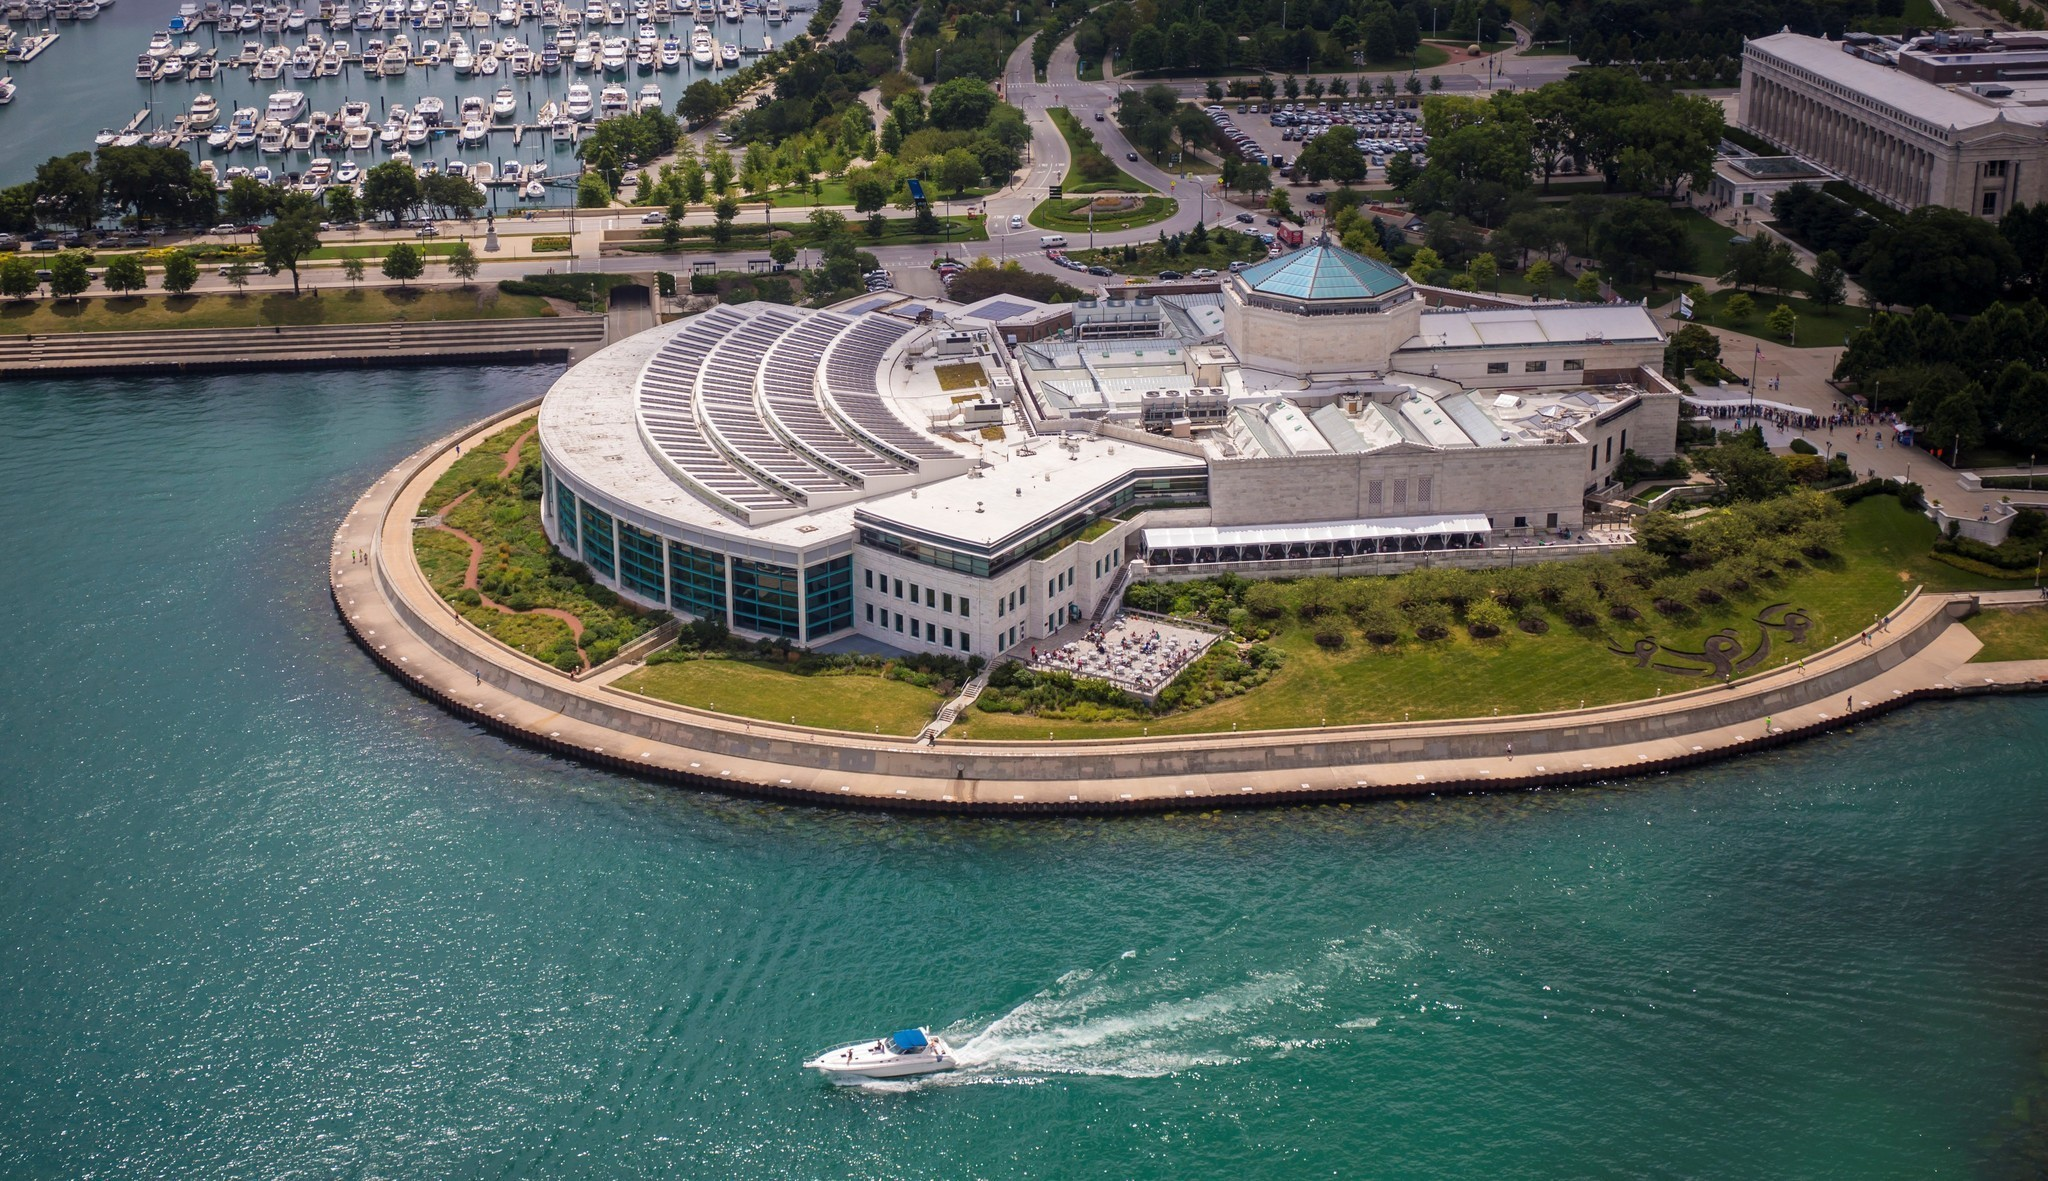 Reserve Shedd Aquarium parking through SpotHero. To find and purchase parking near the Shedd Aquarium, select the date and time(s) for your desired reservation to view availability on the map or list. Shedd Aquarium parking rates and locations are subject to change so book your parking .